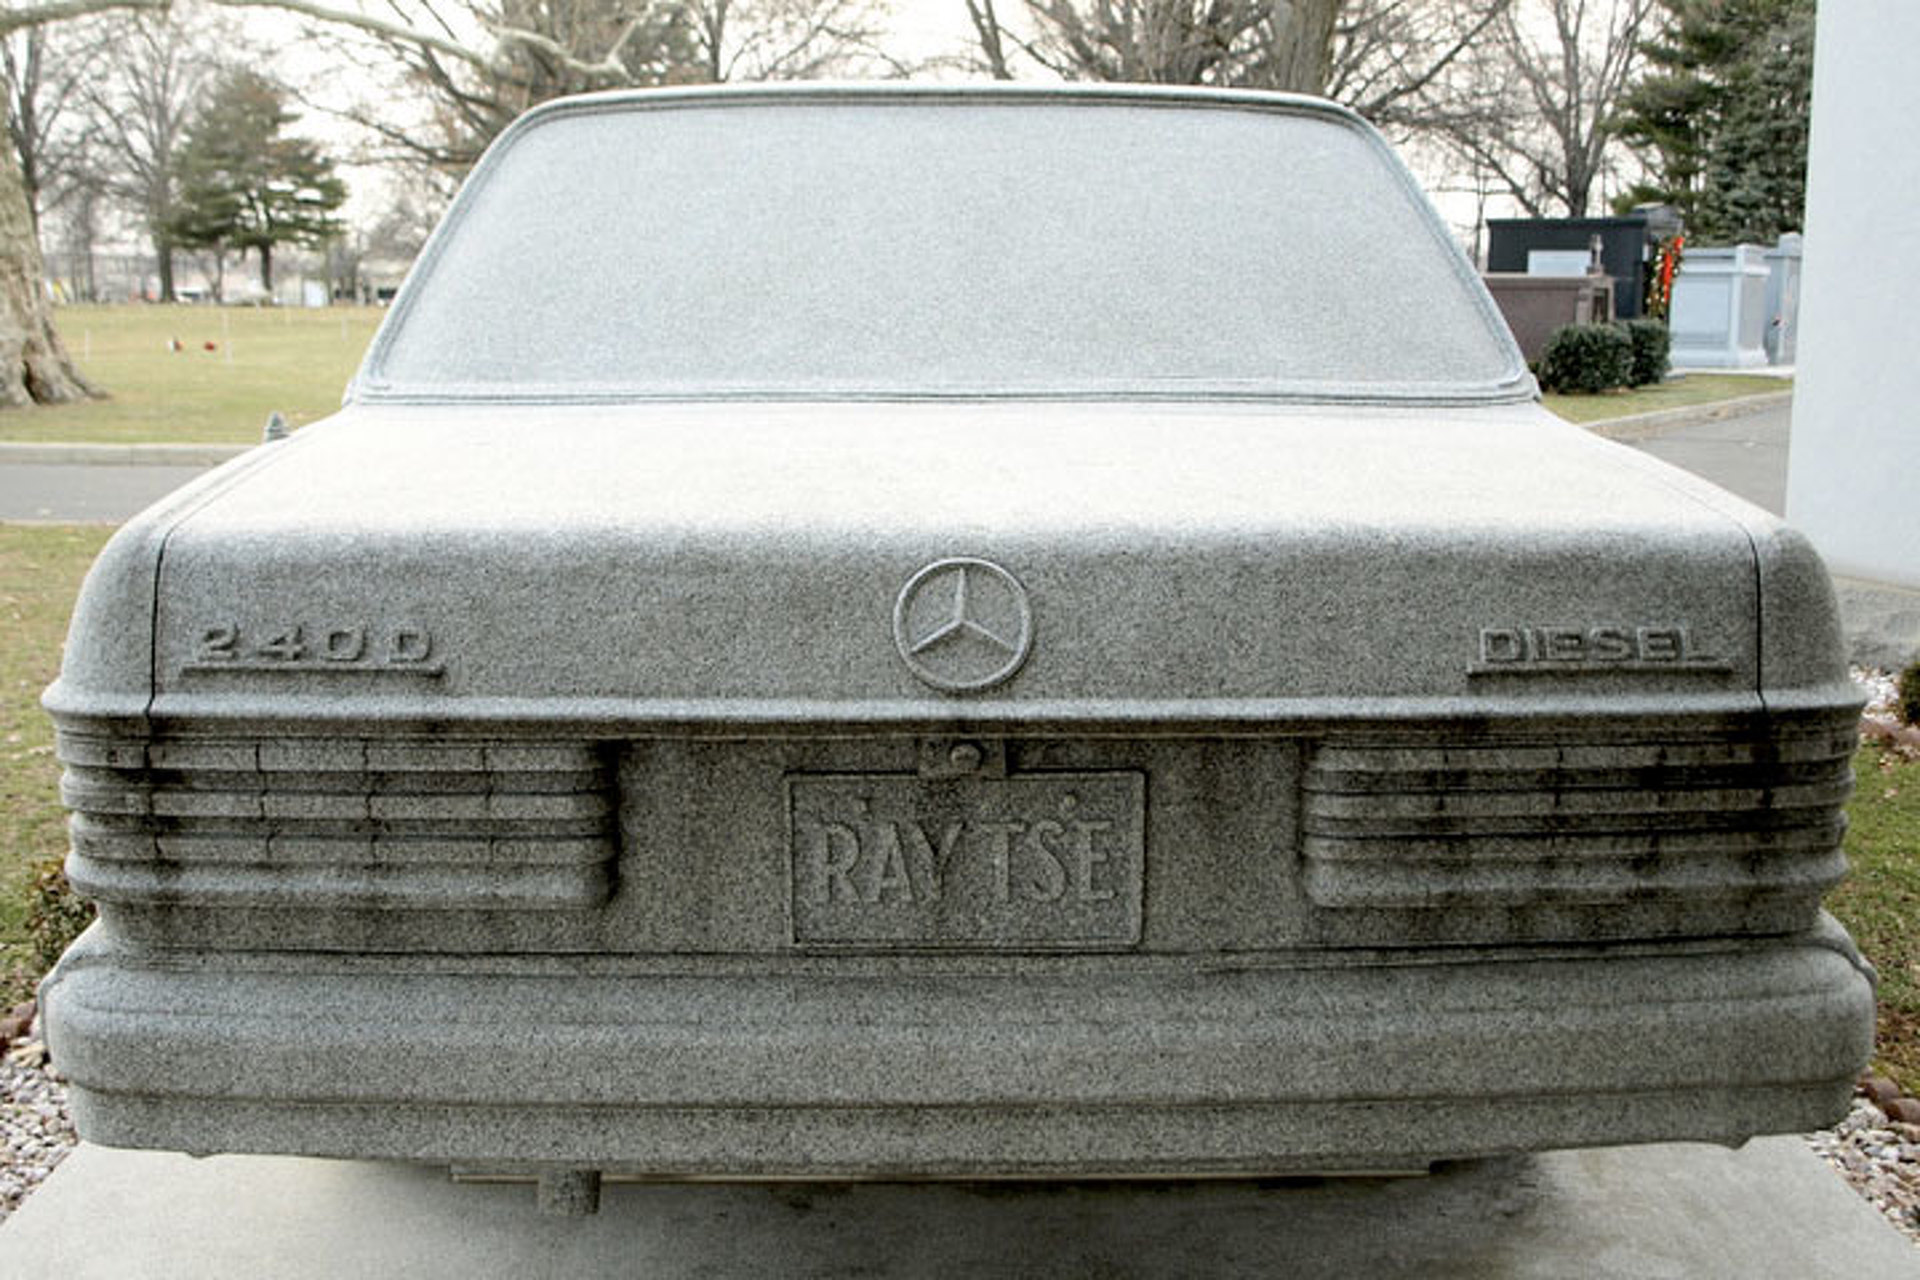 Rust in Piece? Yup, That's a Mercedes-Benz Gravestone